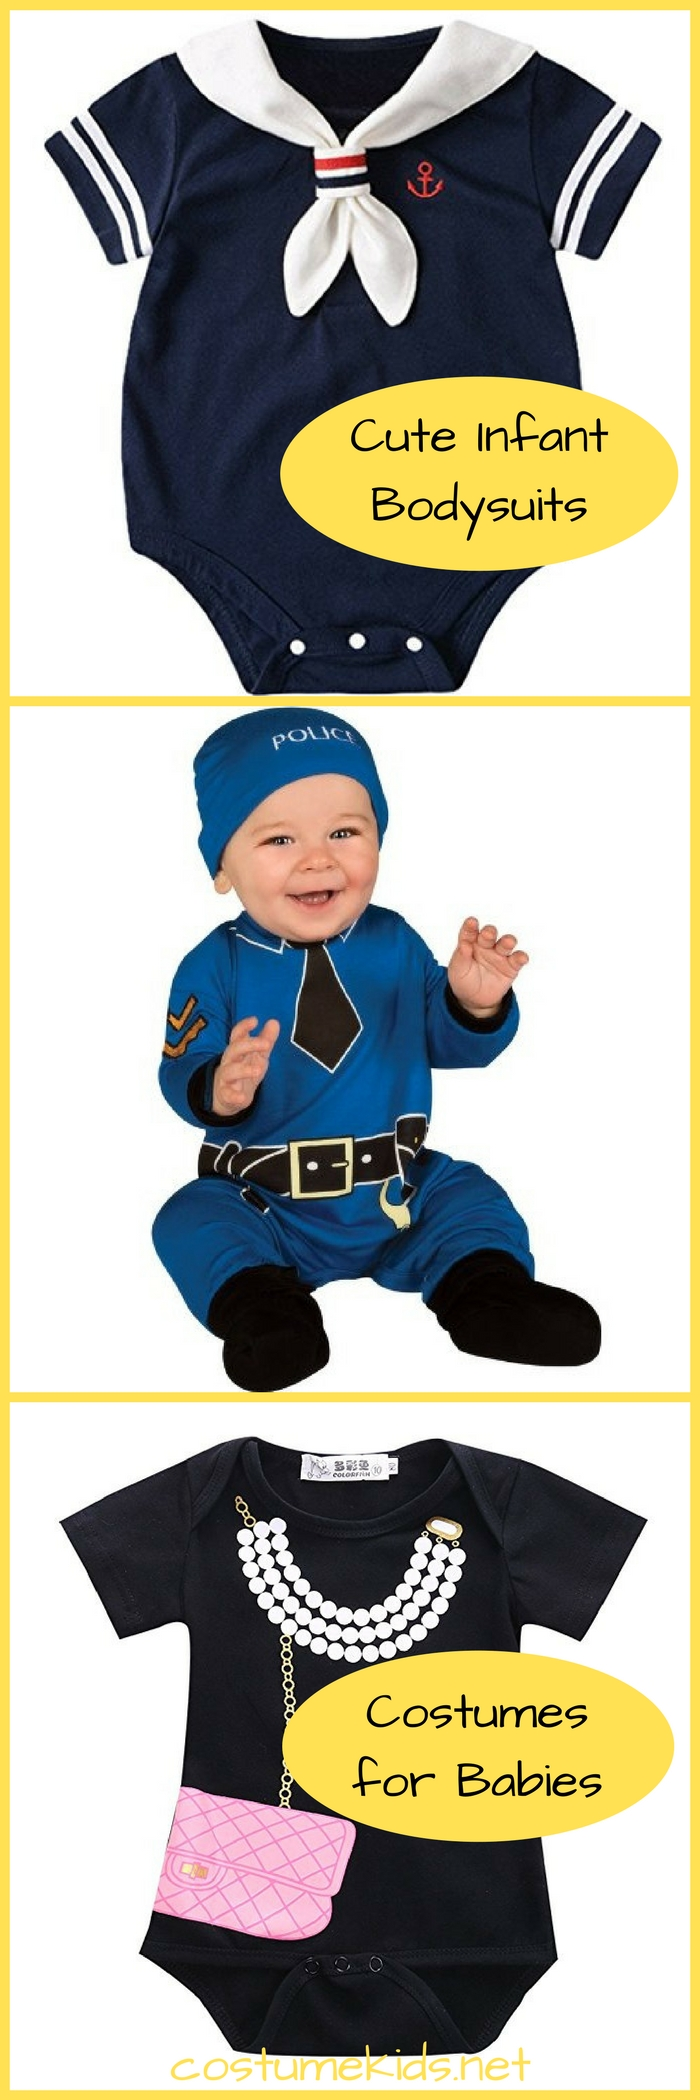 Cute Infant Bodysuits-Adorable Halloween Costume Baby One-Piece Bodysuits